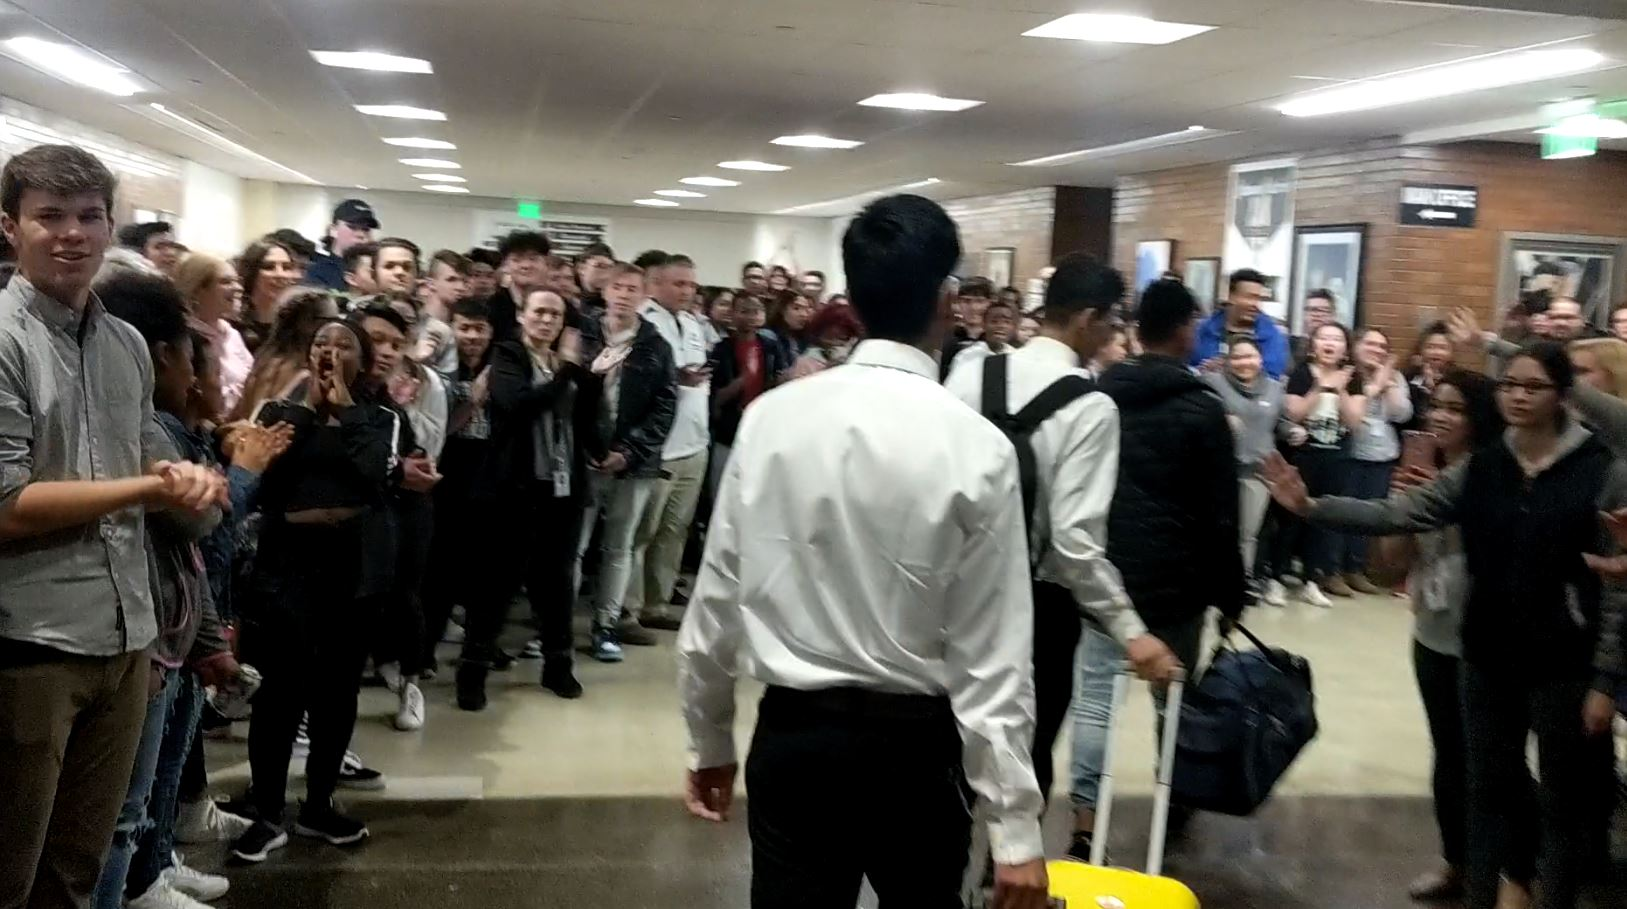 The Cottonwood High School Robotics Club, comprised mostly of refugee students representing multiple countries, got a celebrity sendoff from their classmates on Tuesday. (Photo: Robyn Ivins)